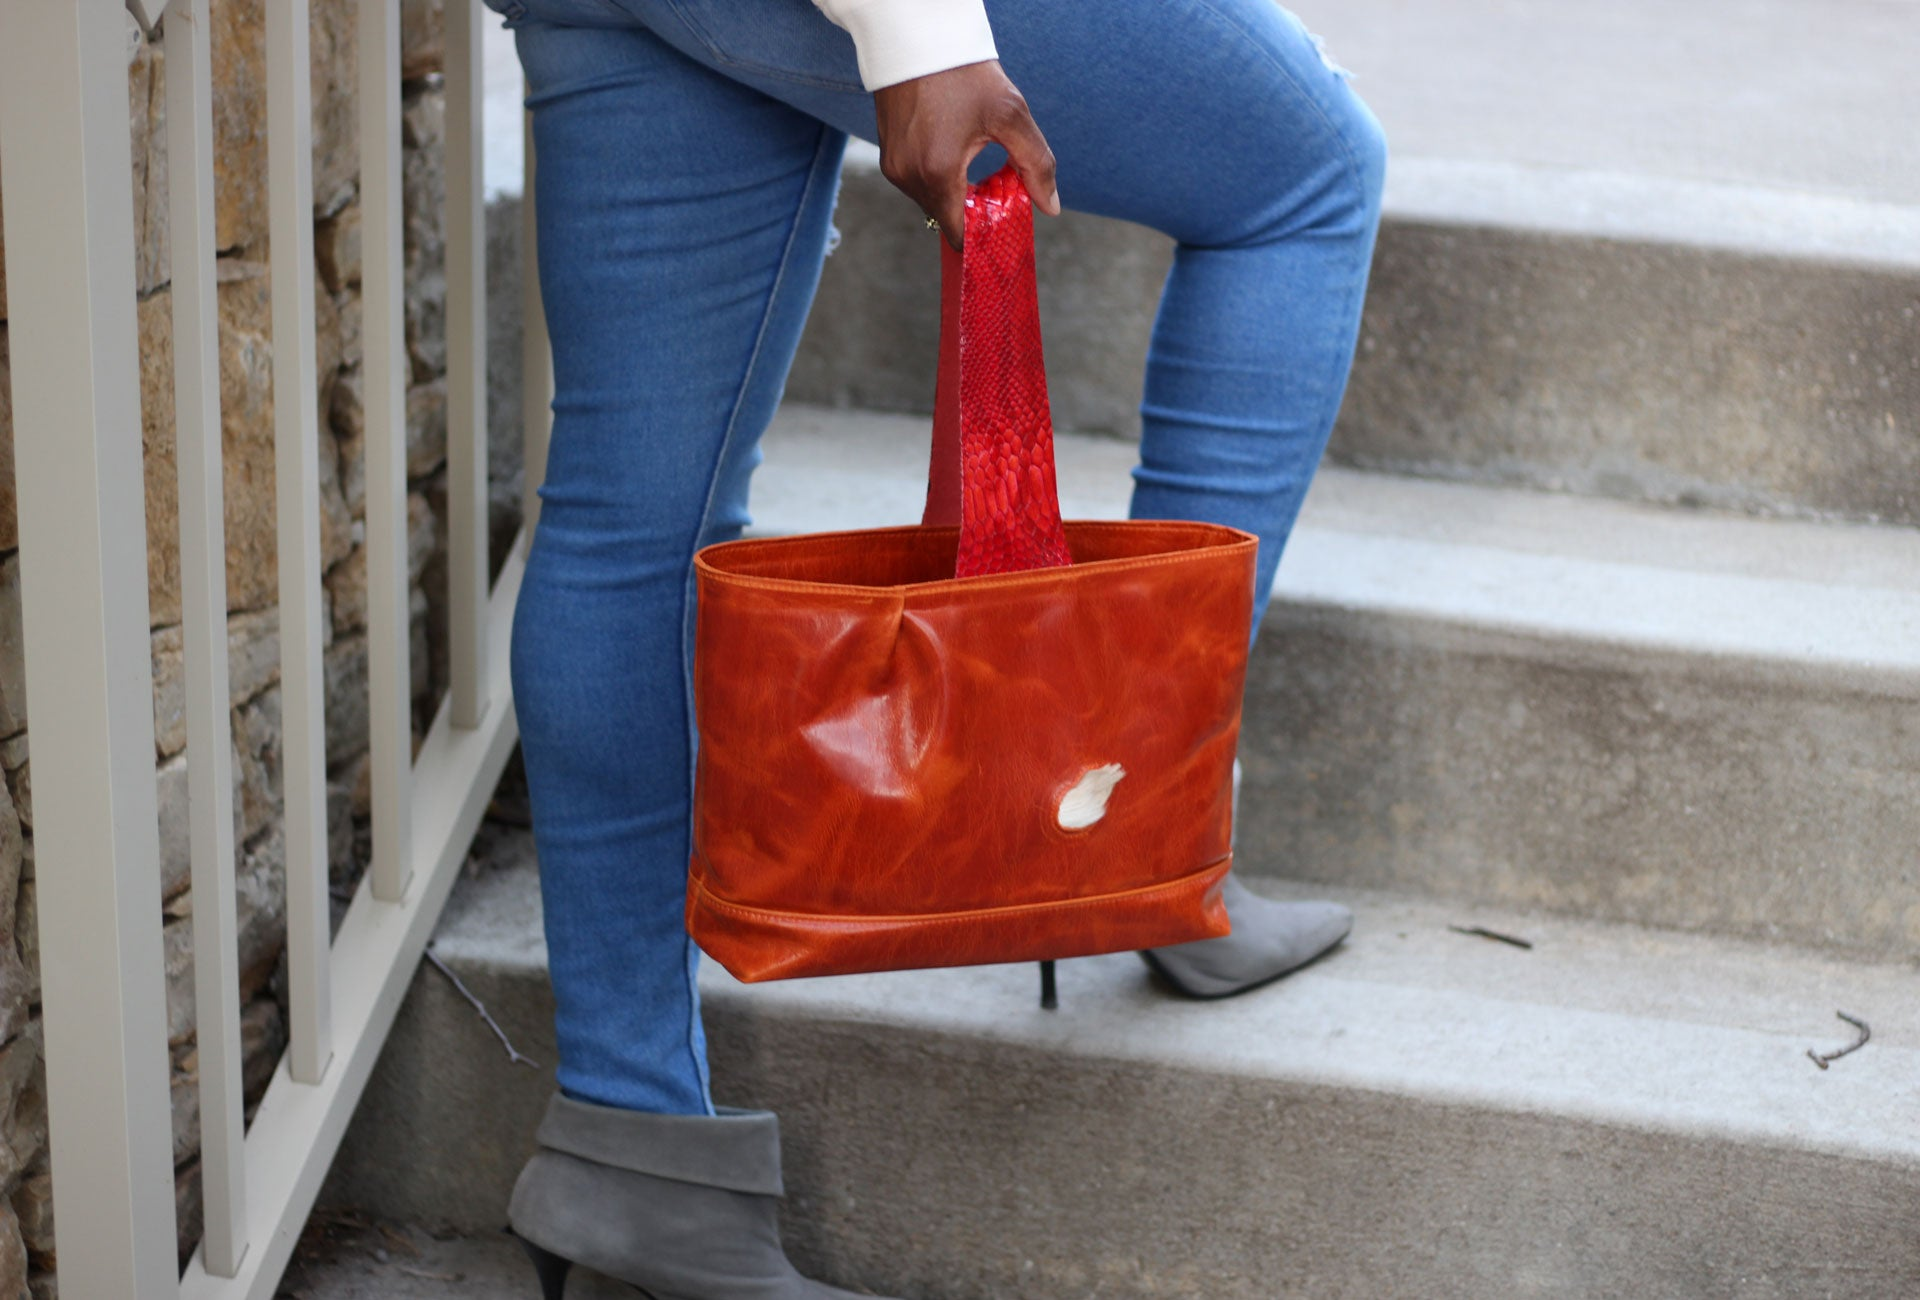 Unique purses made using sustainable leather and flawed hide celebrating individualism. Key hook, deep zipper and pouch pockets for organization, and security. Own your style every bag tells a story